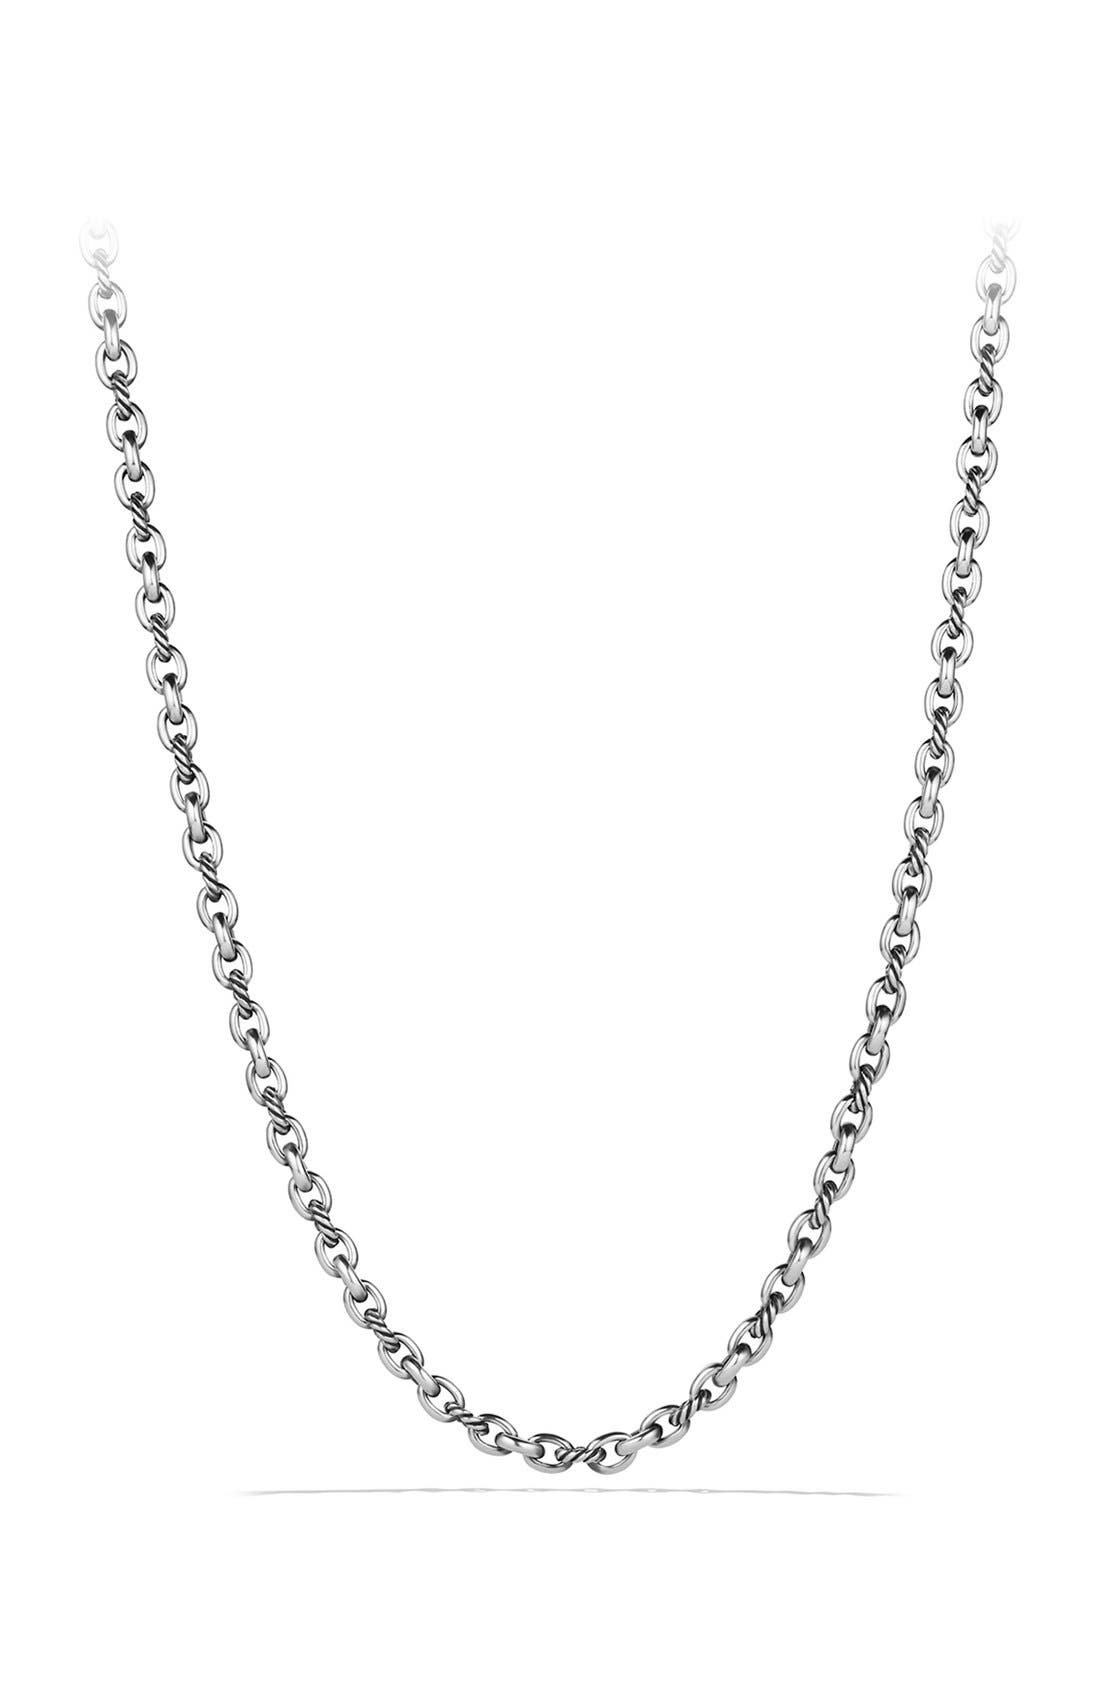 Oval Link Necklace,                             Main thumbnail 1, color,                             SILVER